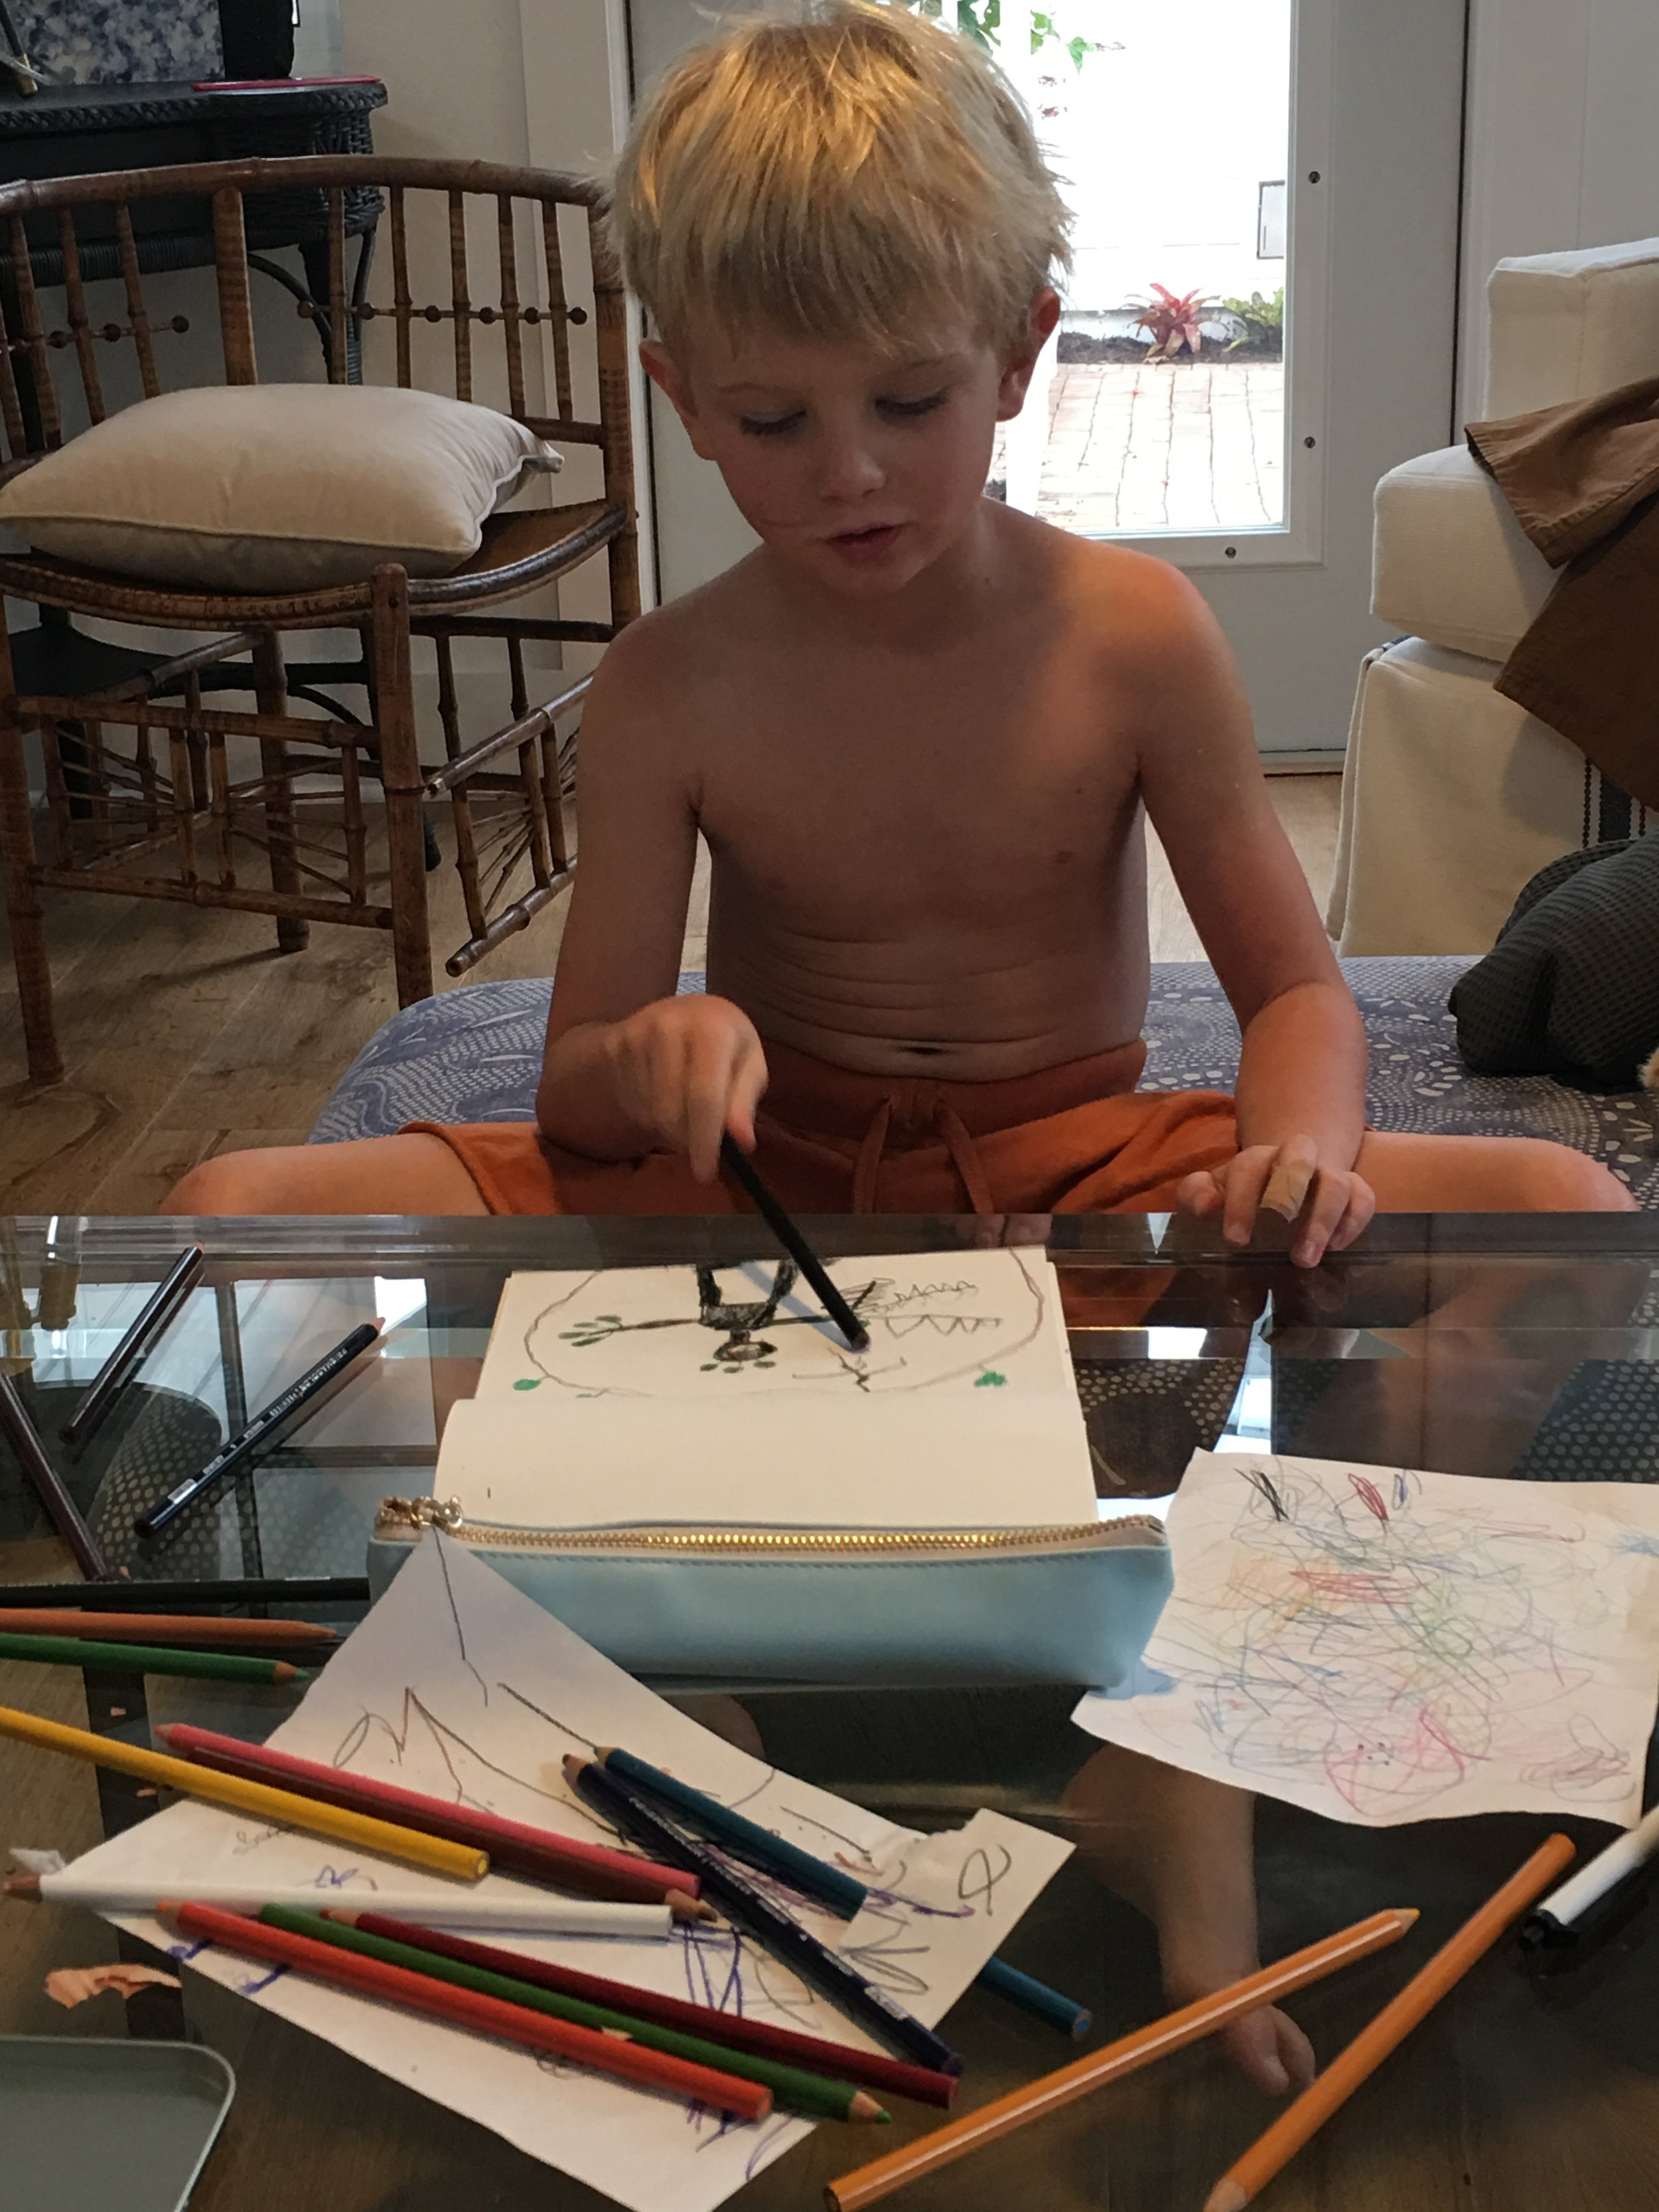 Joah narrating his story to Gramma as he drew.